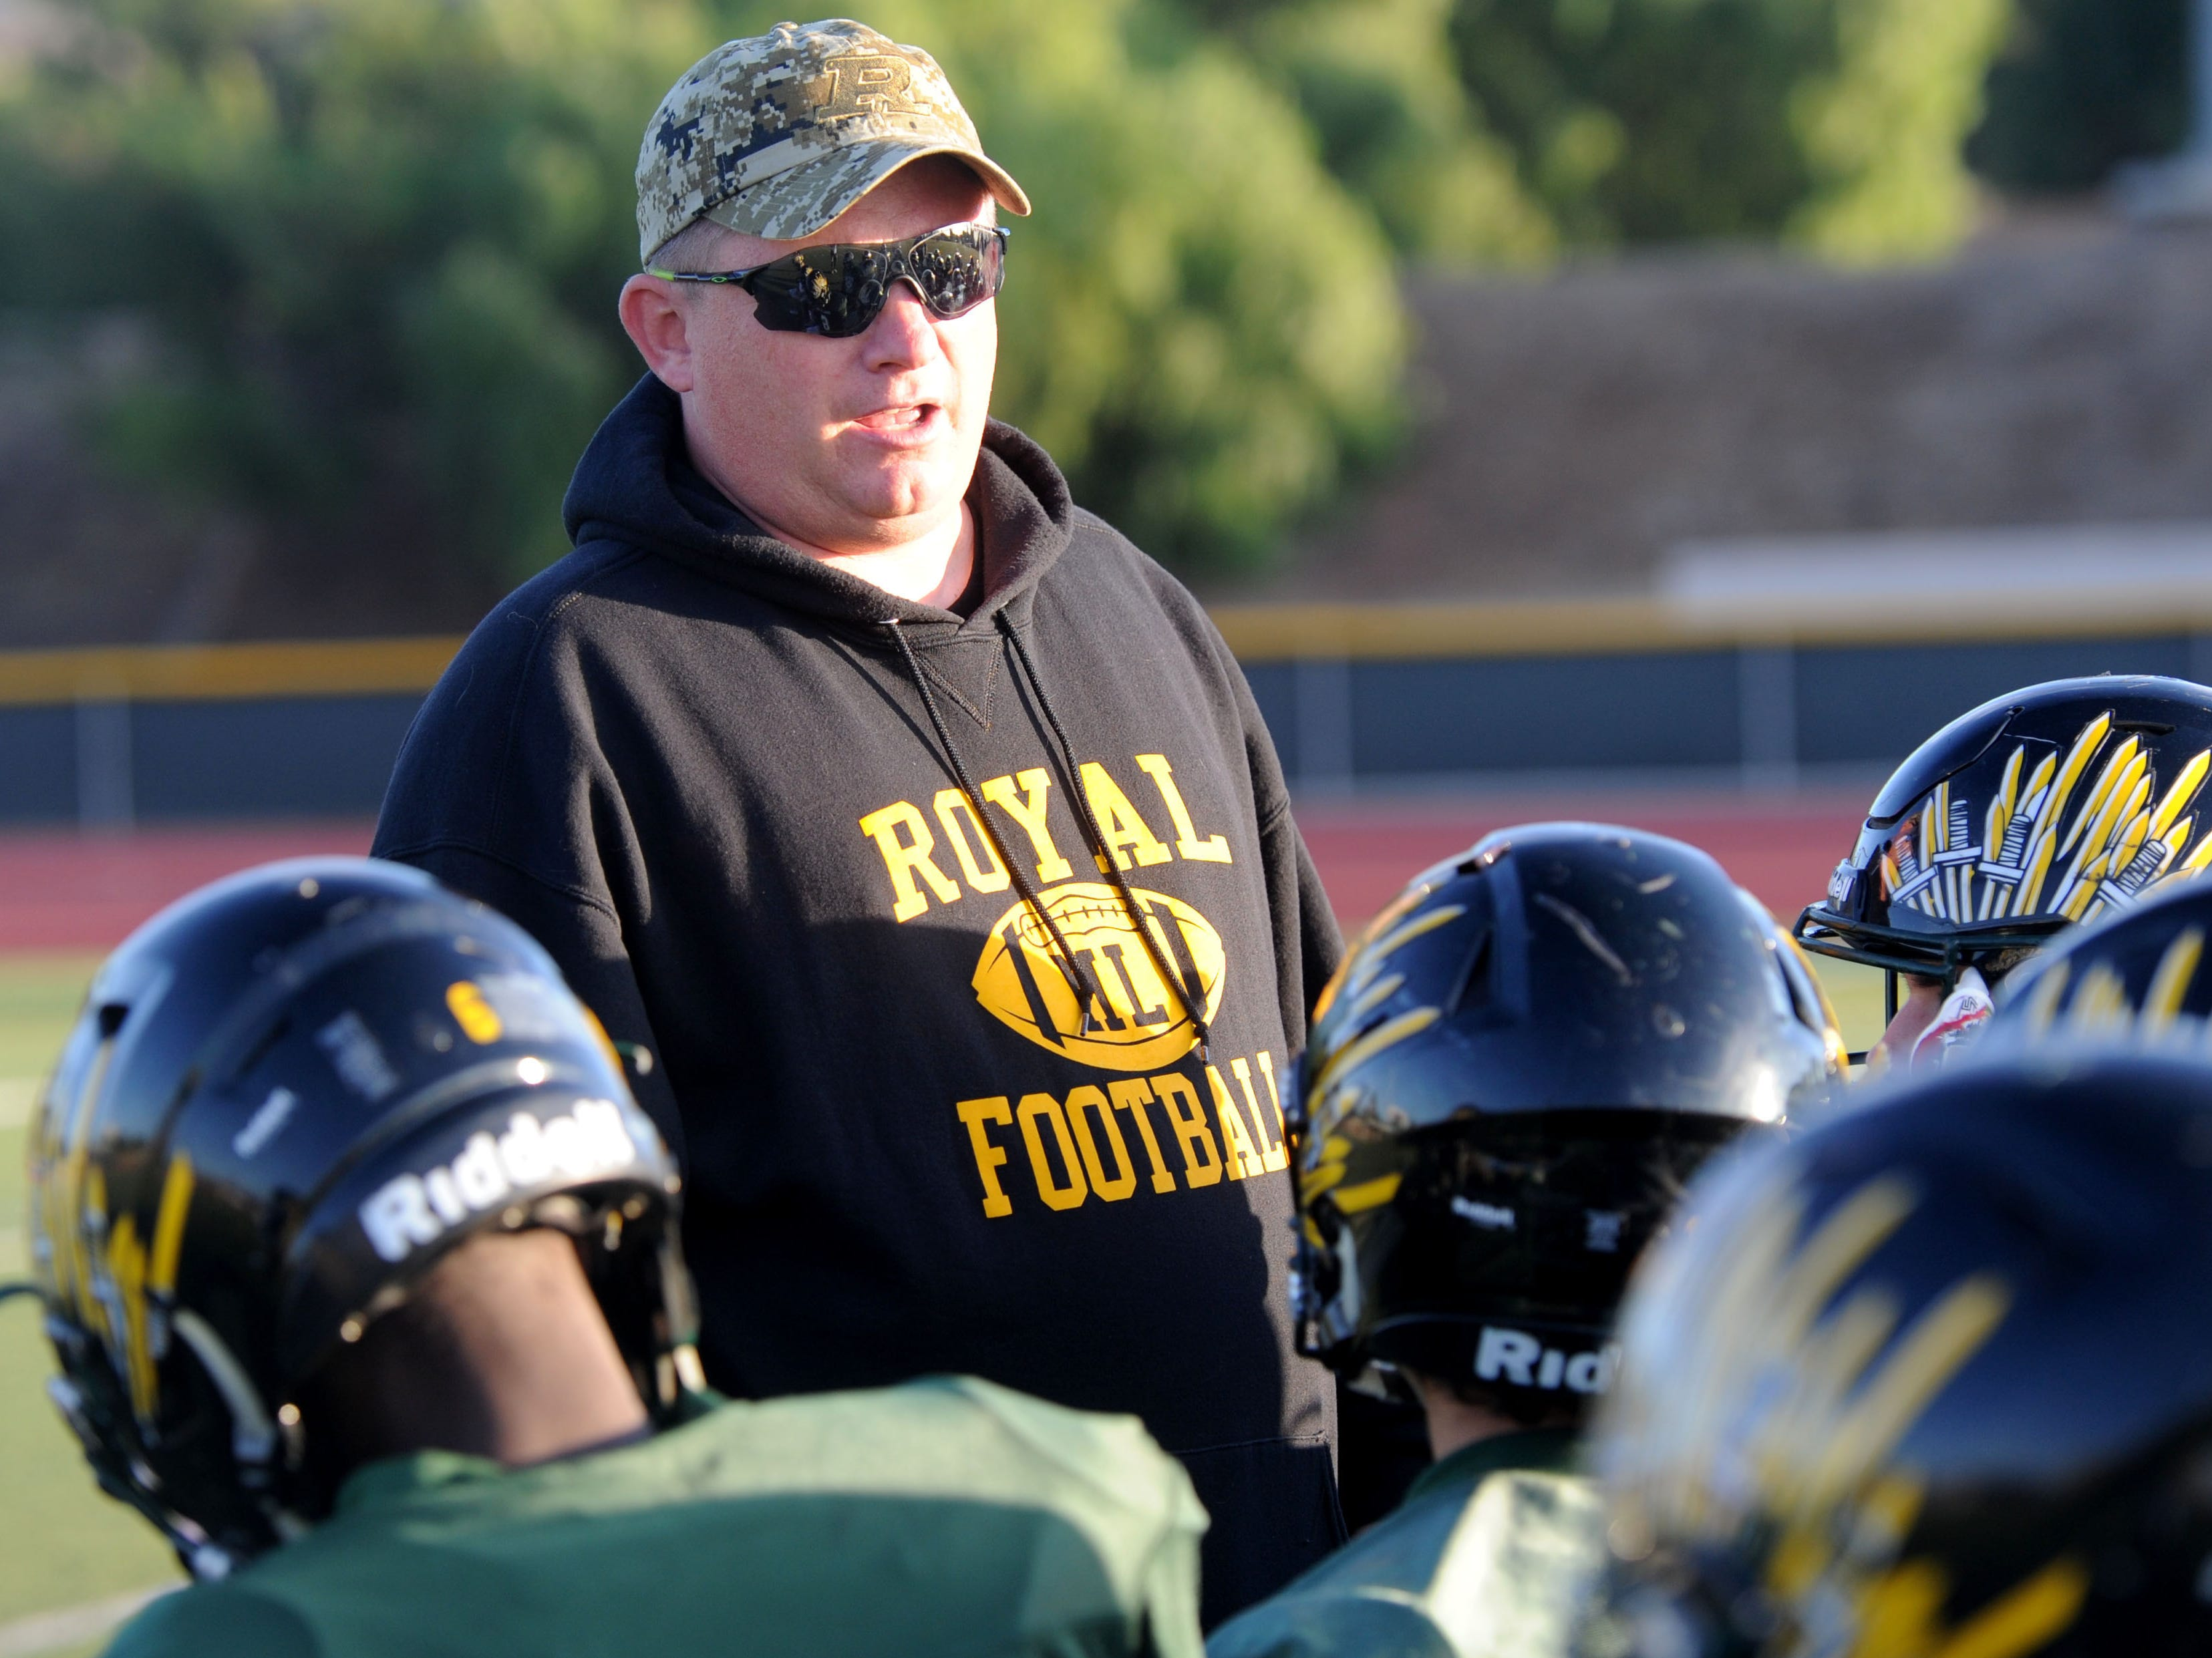 Royal High head football coach Matt Lewis says his firing the result of smear campaign